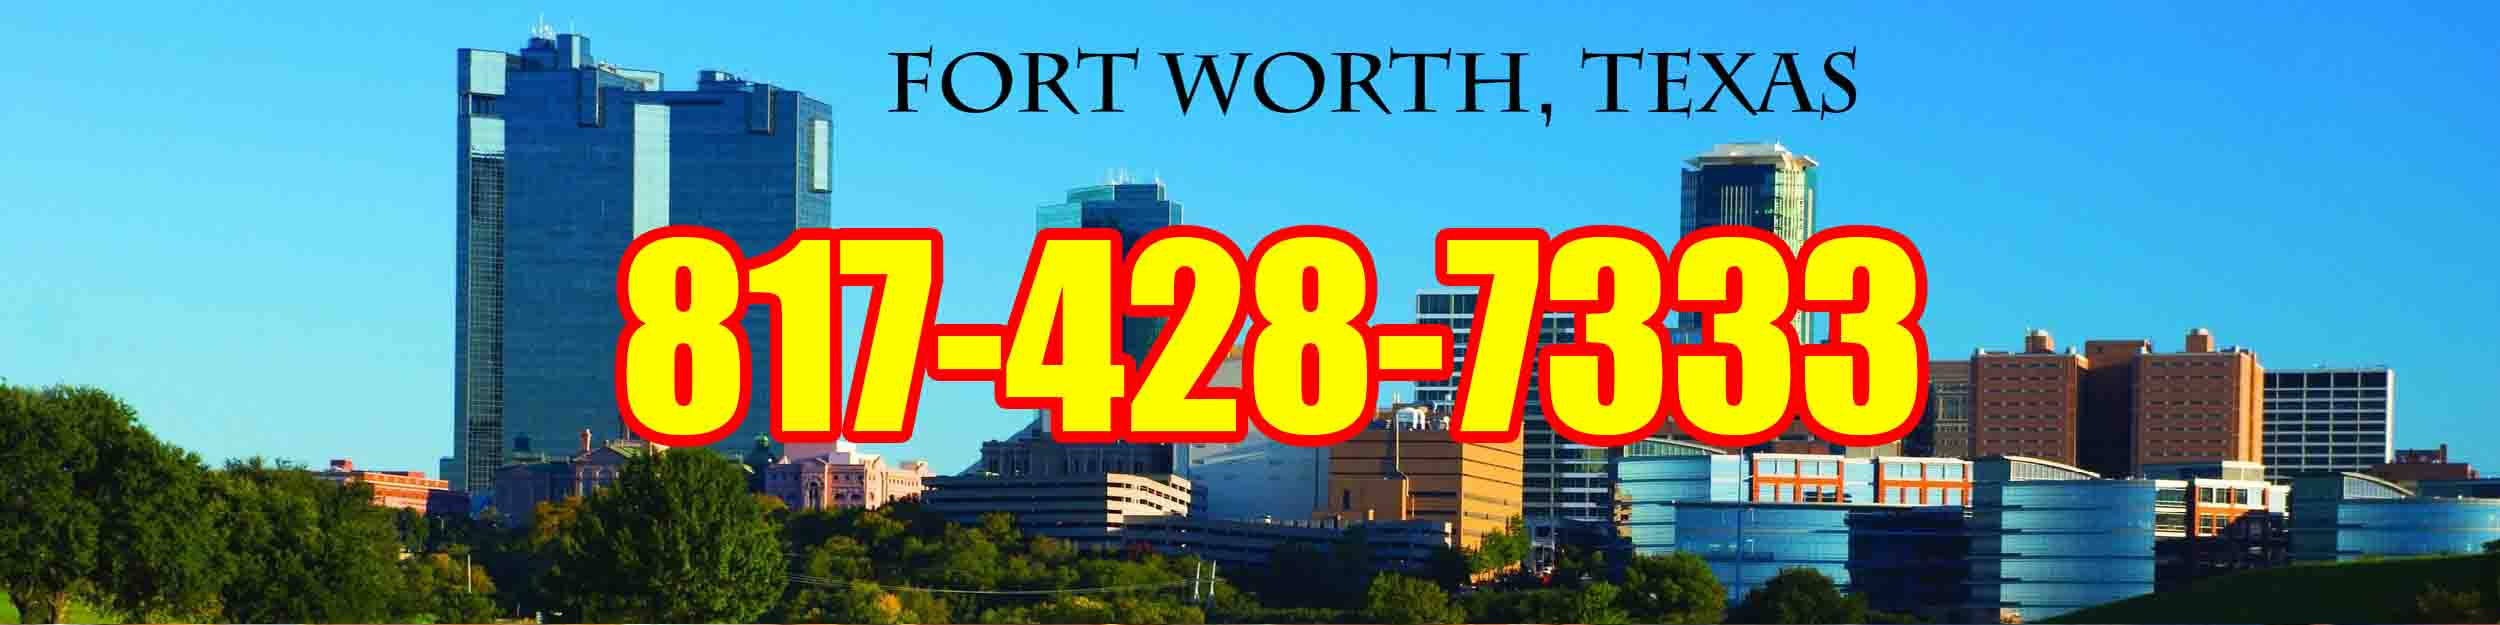 fort worth tx Header - Rekey Locks On Your Home